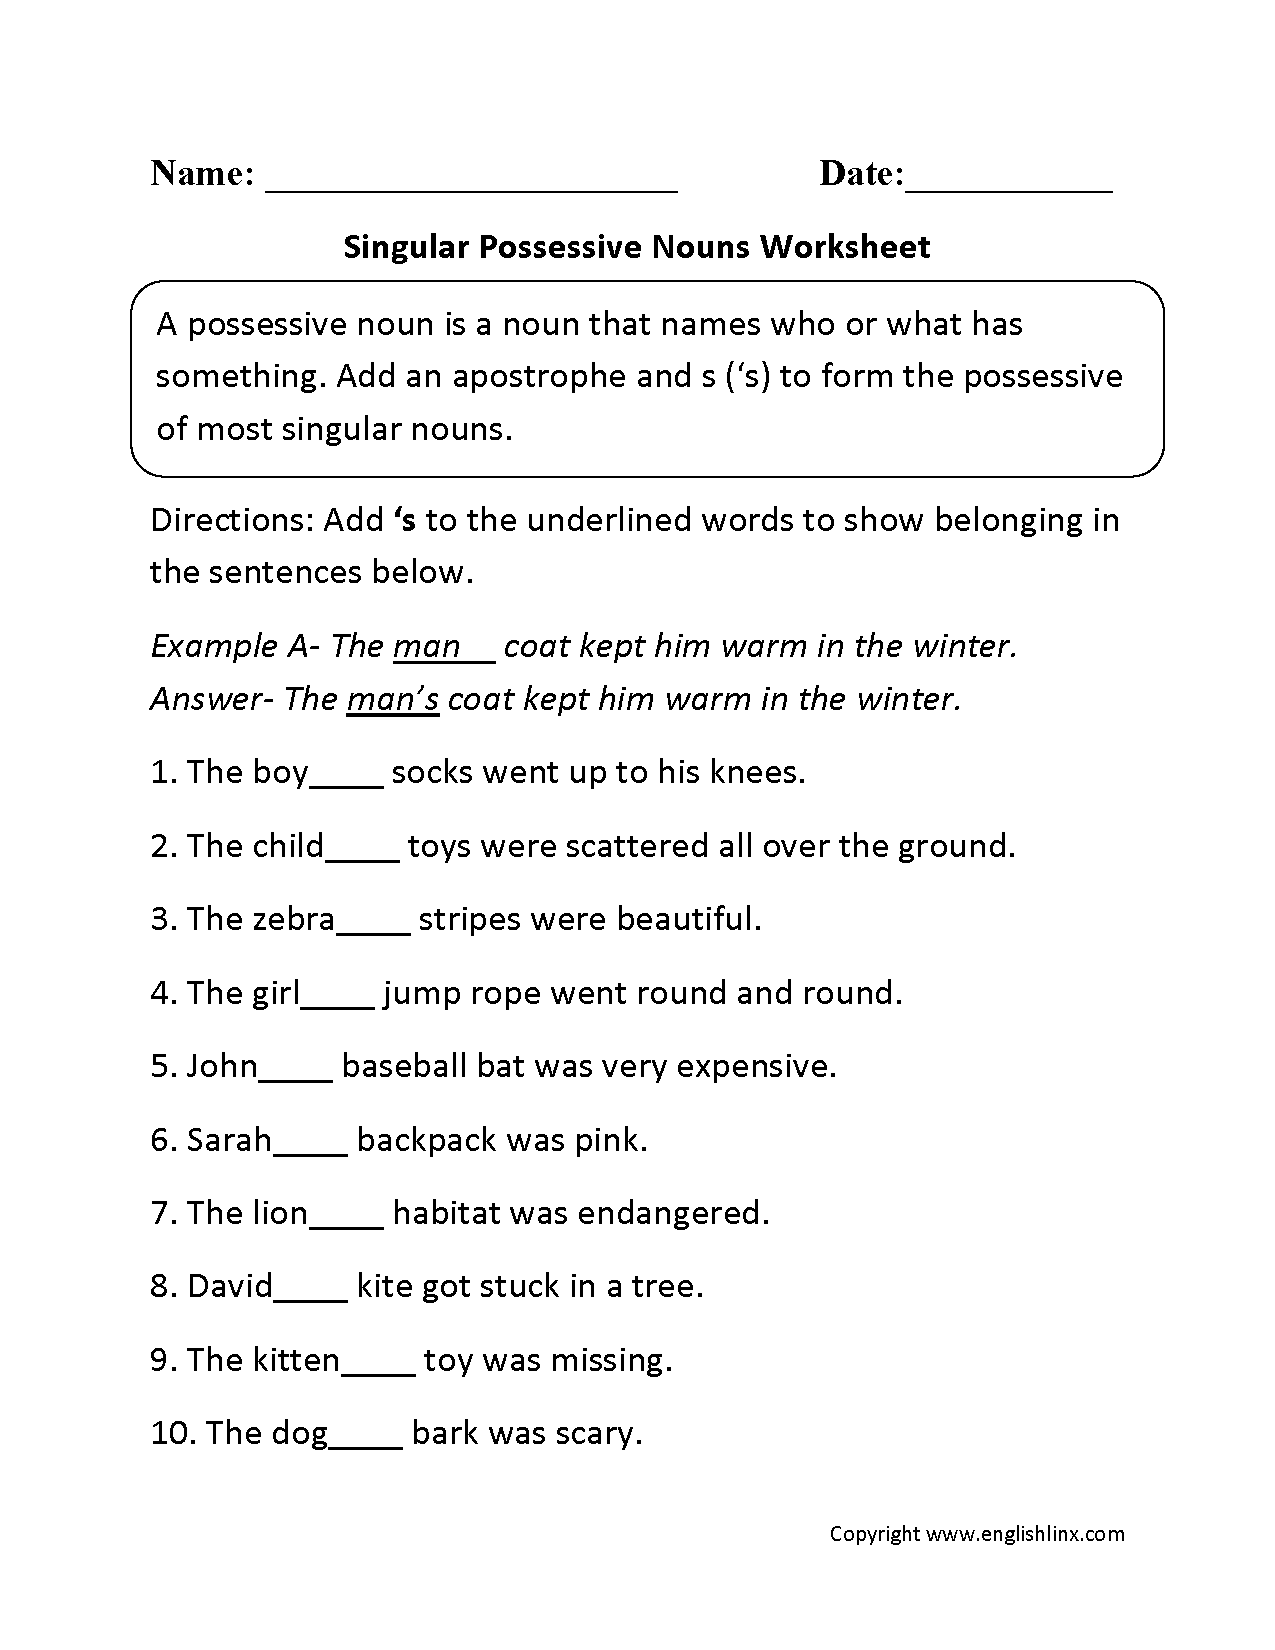 Singular Possessive Nouns Worksheets Language Conventions